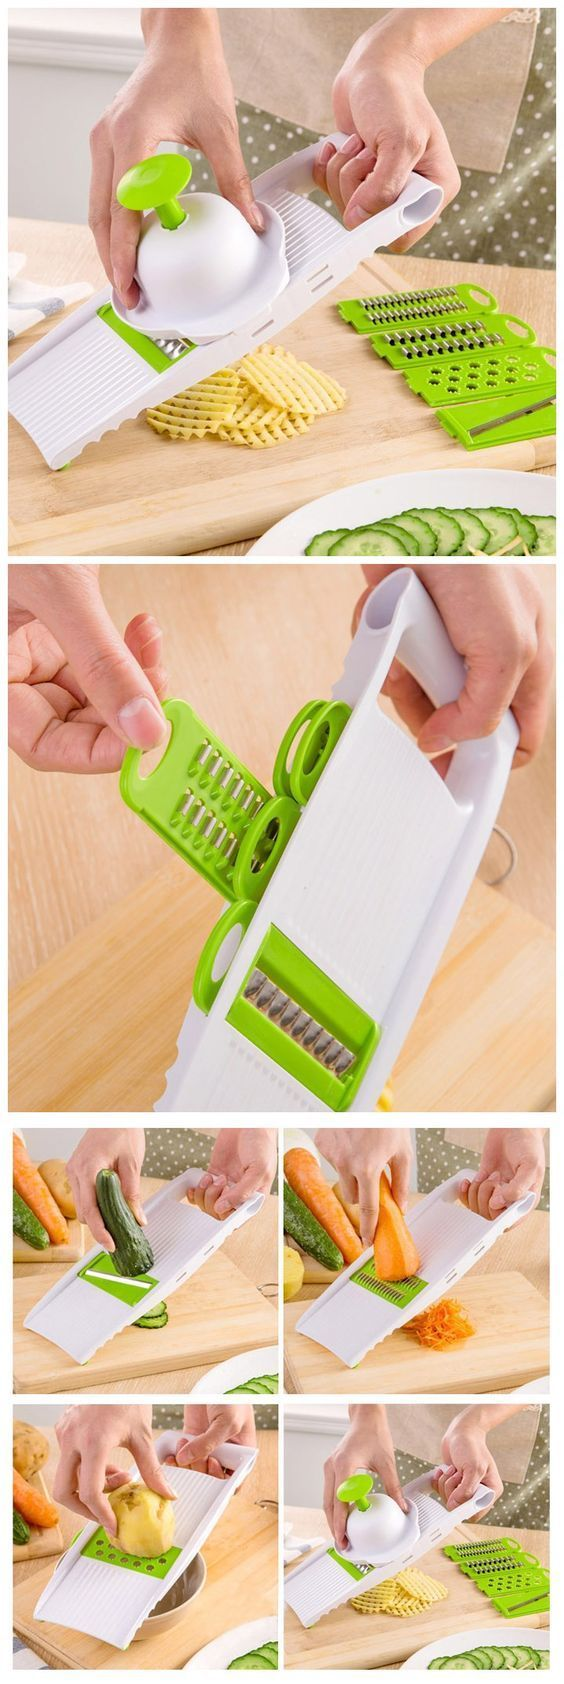 Funny grab shaped multi purpose fruits vegetable peeler bottle opener - Multipurpose Slicer Takes Care Of All Of Your Fruit And Vegetable Cutting Needs This Gadget Does It All Slice Dice Chop Julienne Shred